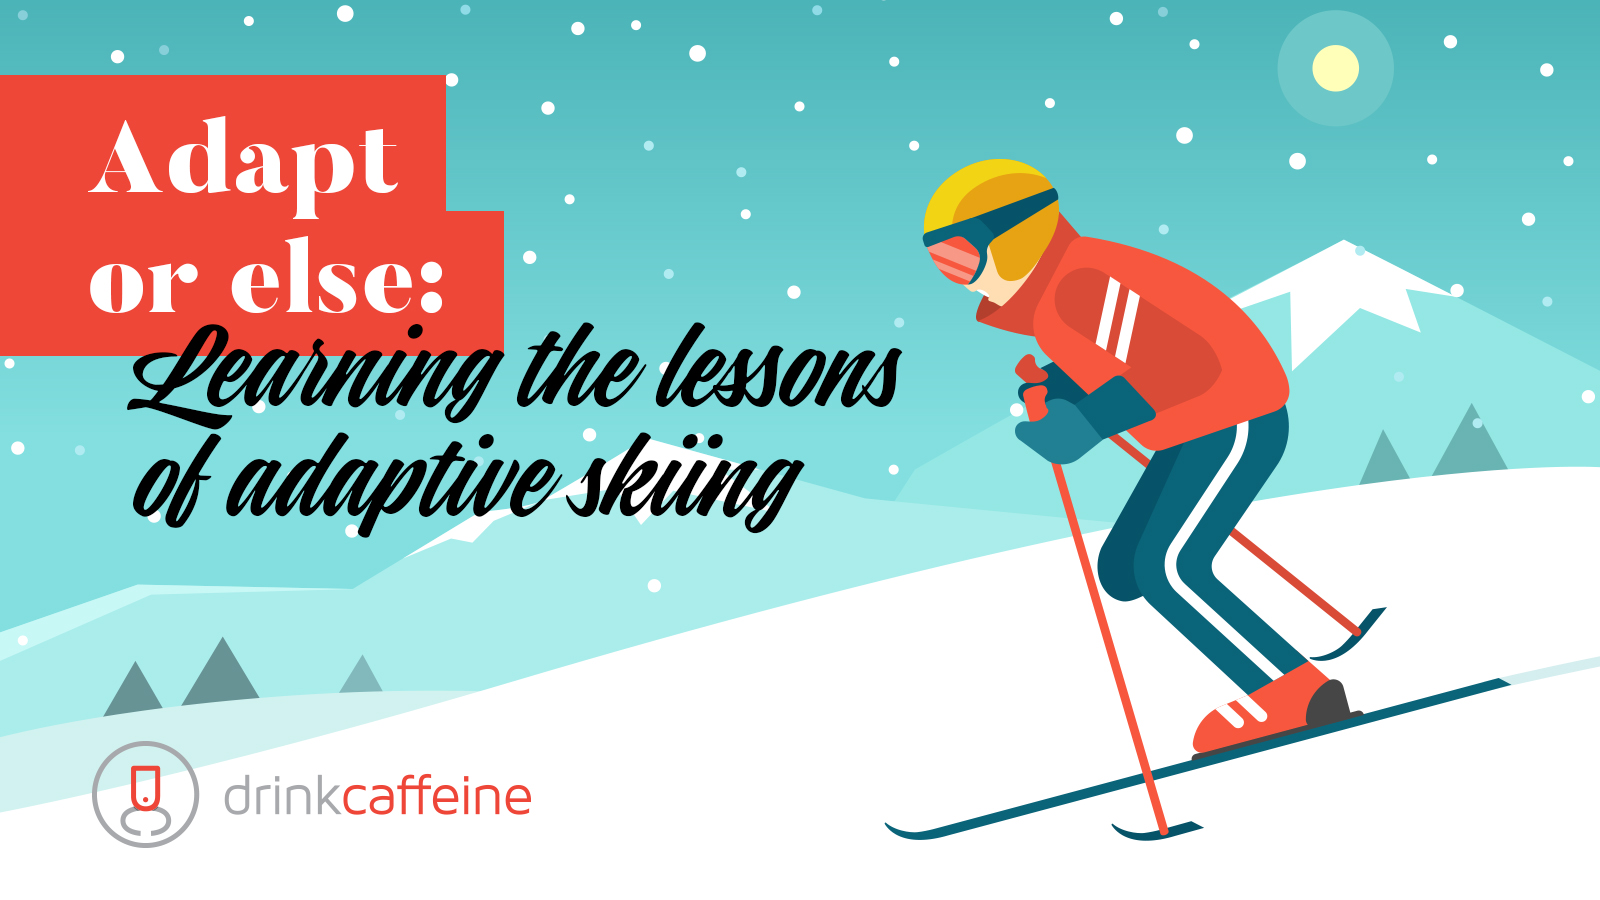 What adaptive skiing teaches us blog image